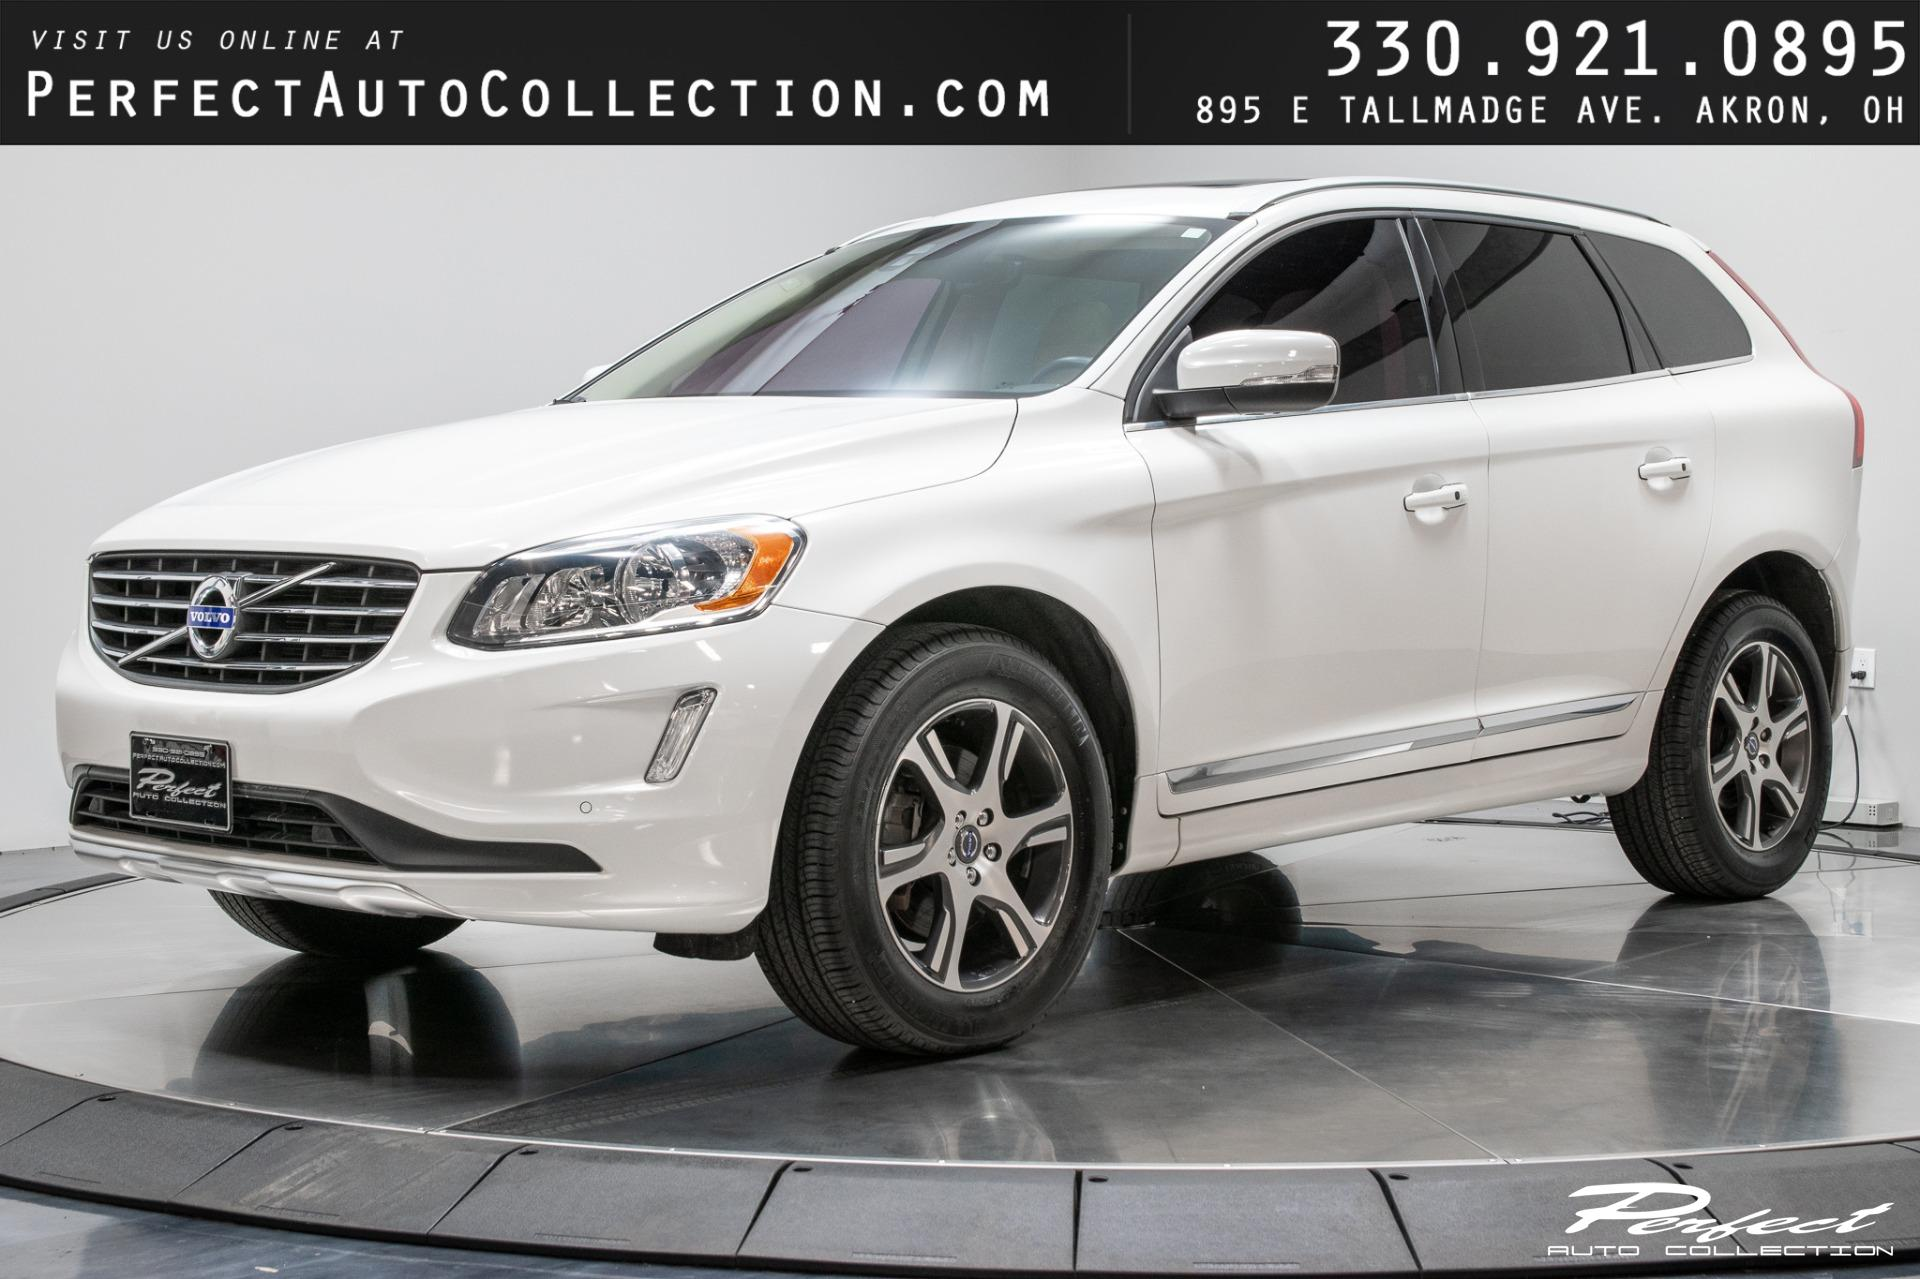 Used 2015 Volvo XC60 T6 for sale $19,393 at Perfect Auto Collection in Akron OH 44310 1